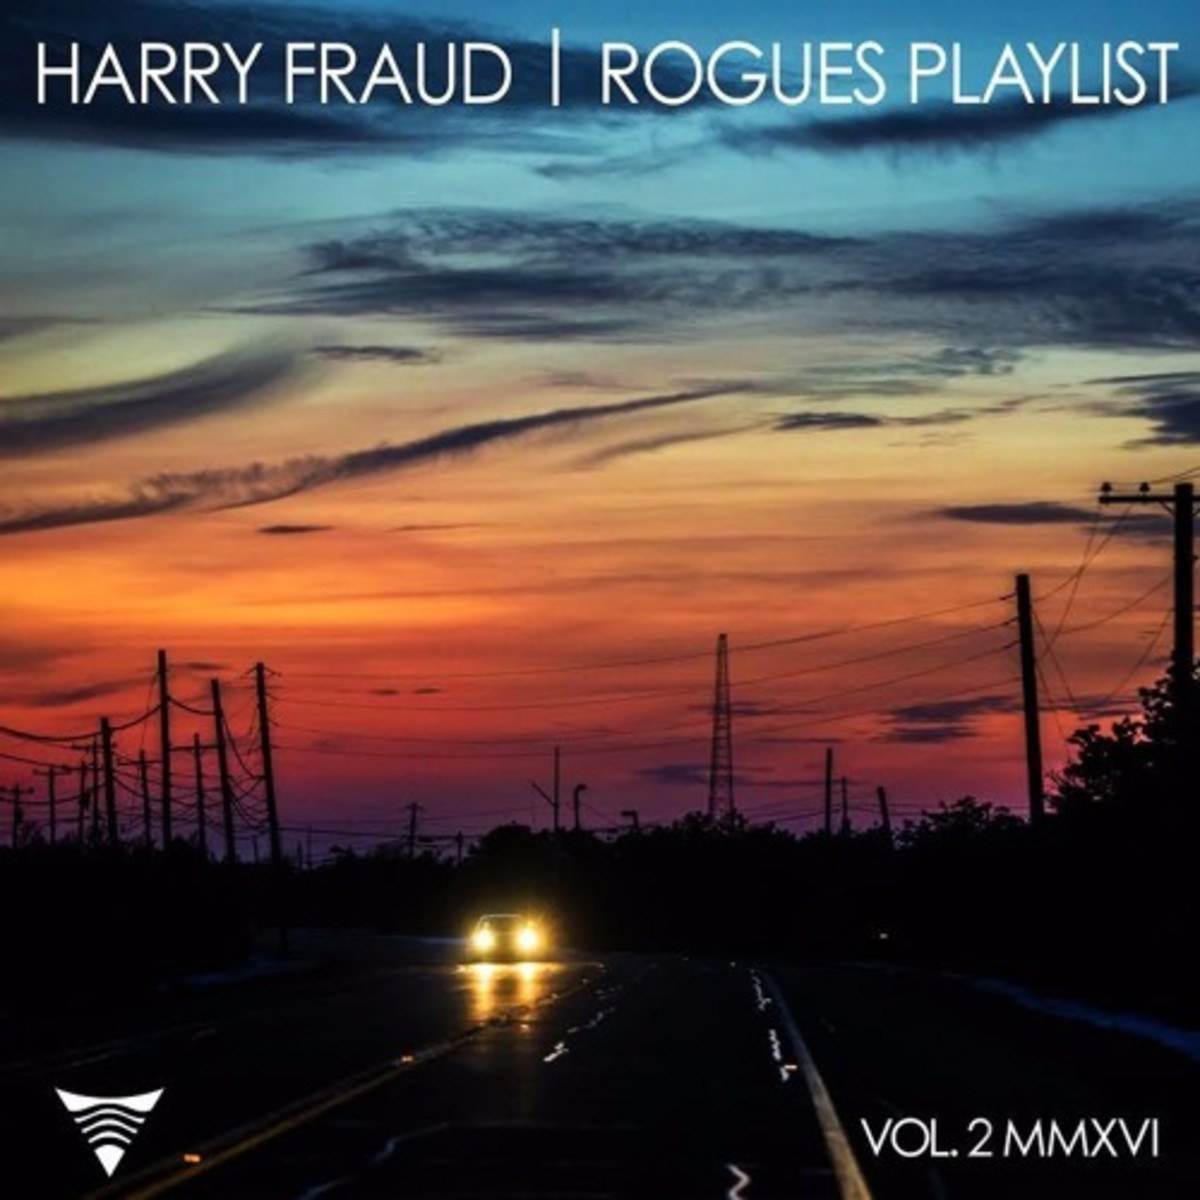 harry-fraud-rogues-playlist-vol-2.jpg